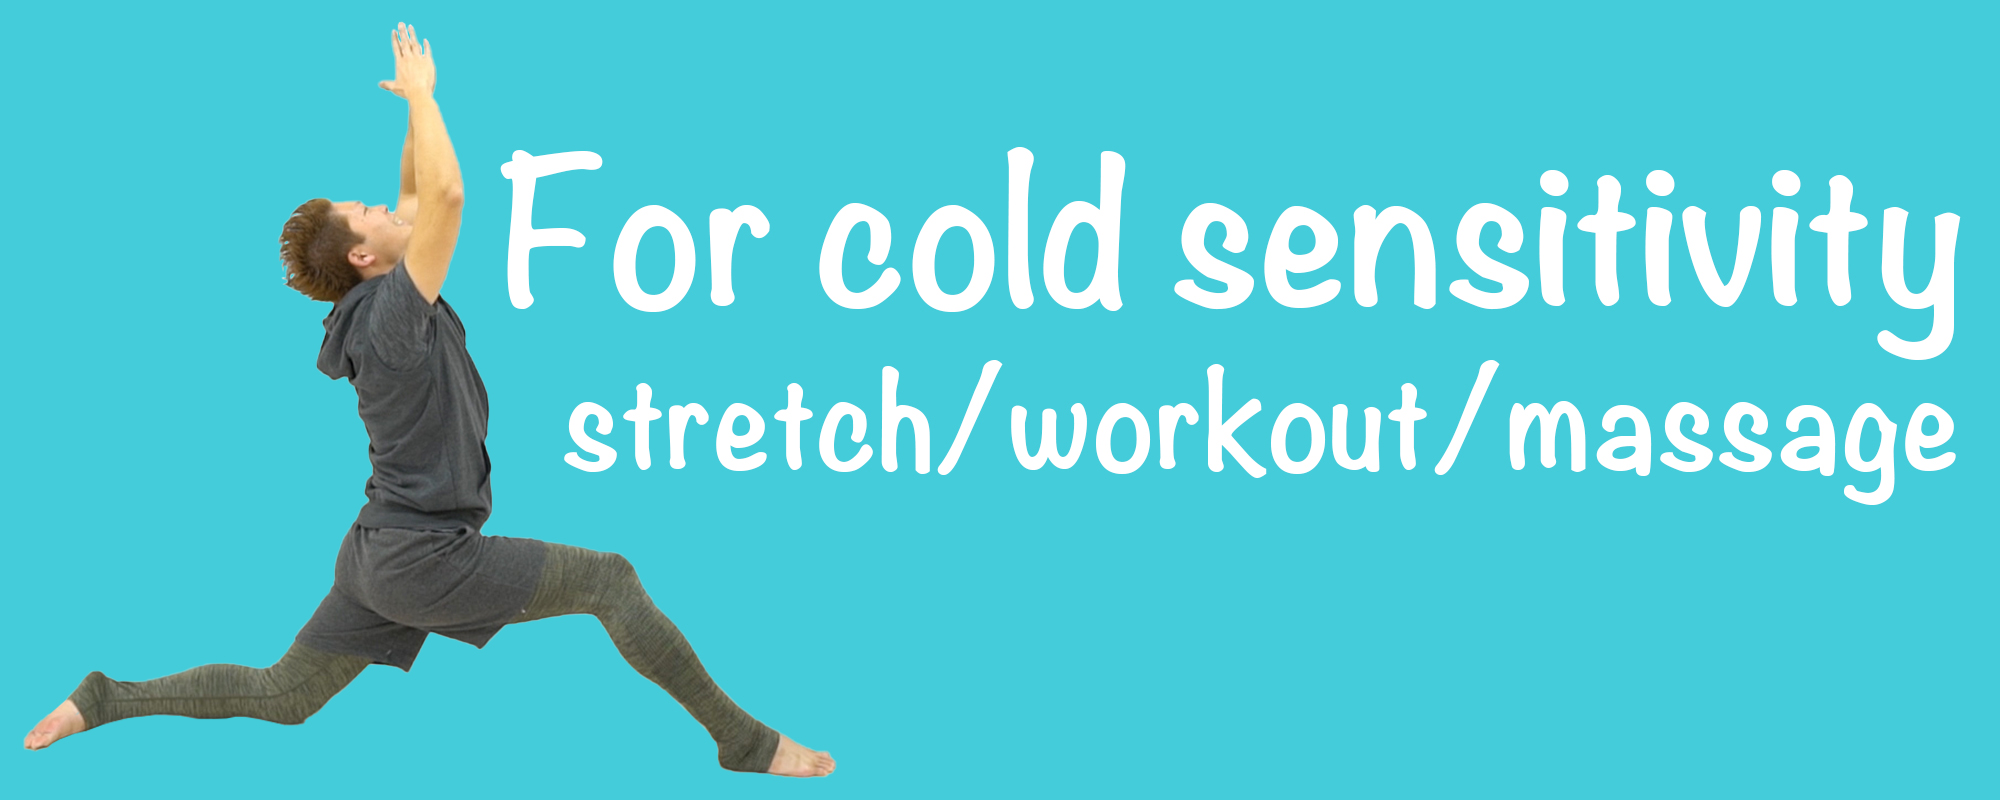 Exercise for cold sensitivity (stretch/workout/massage)